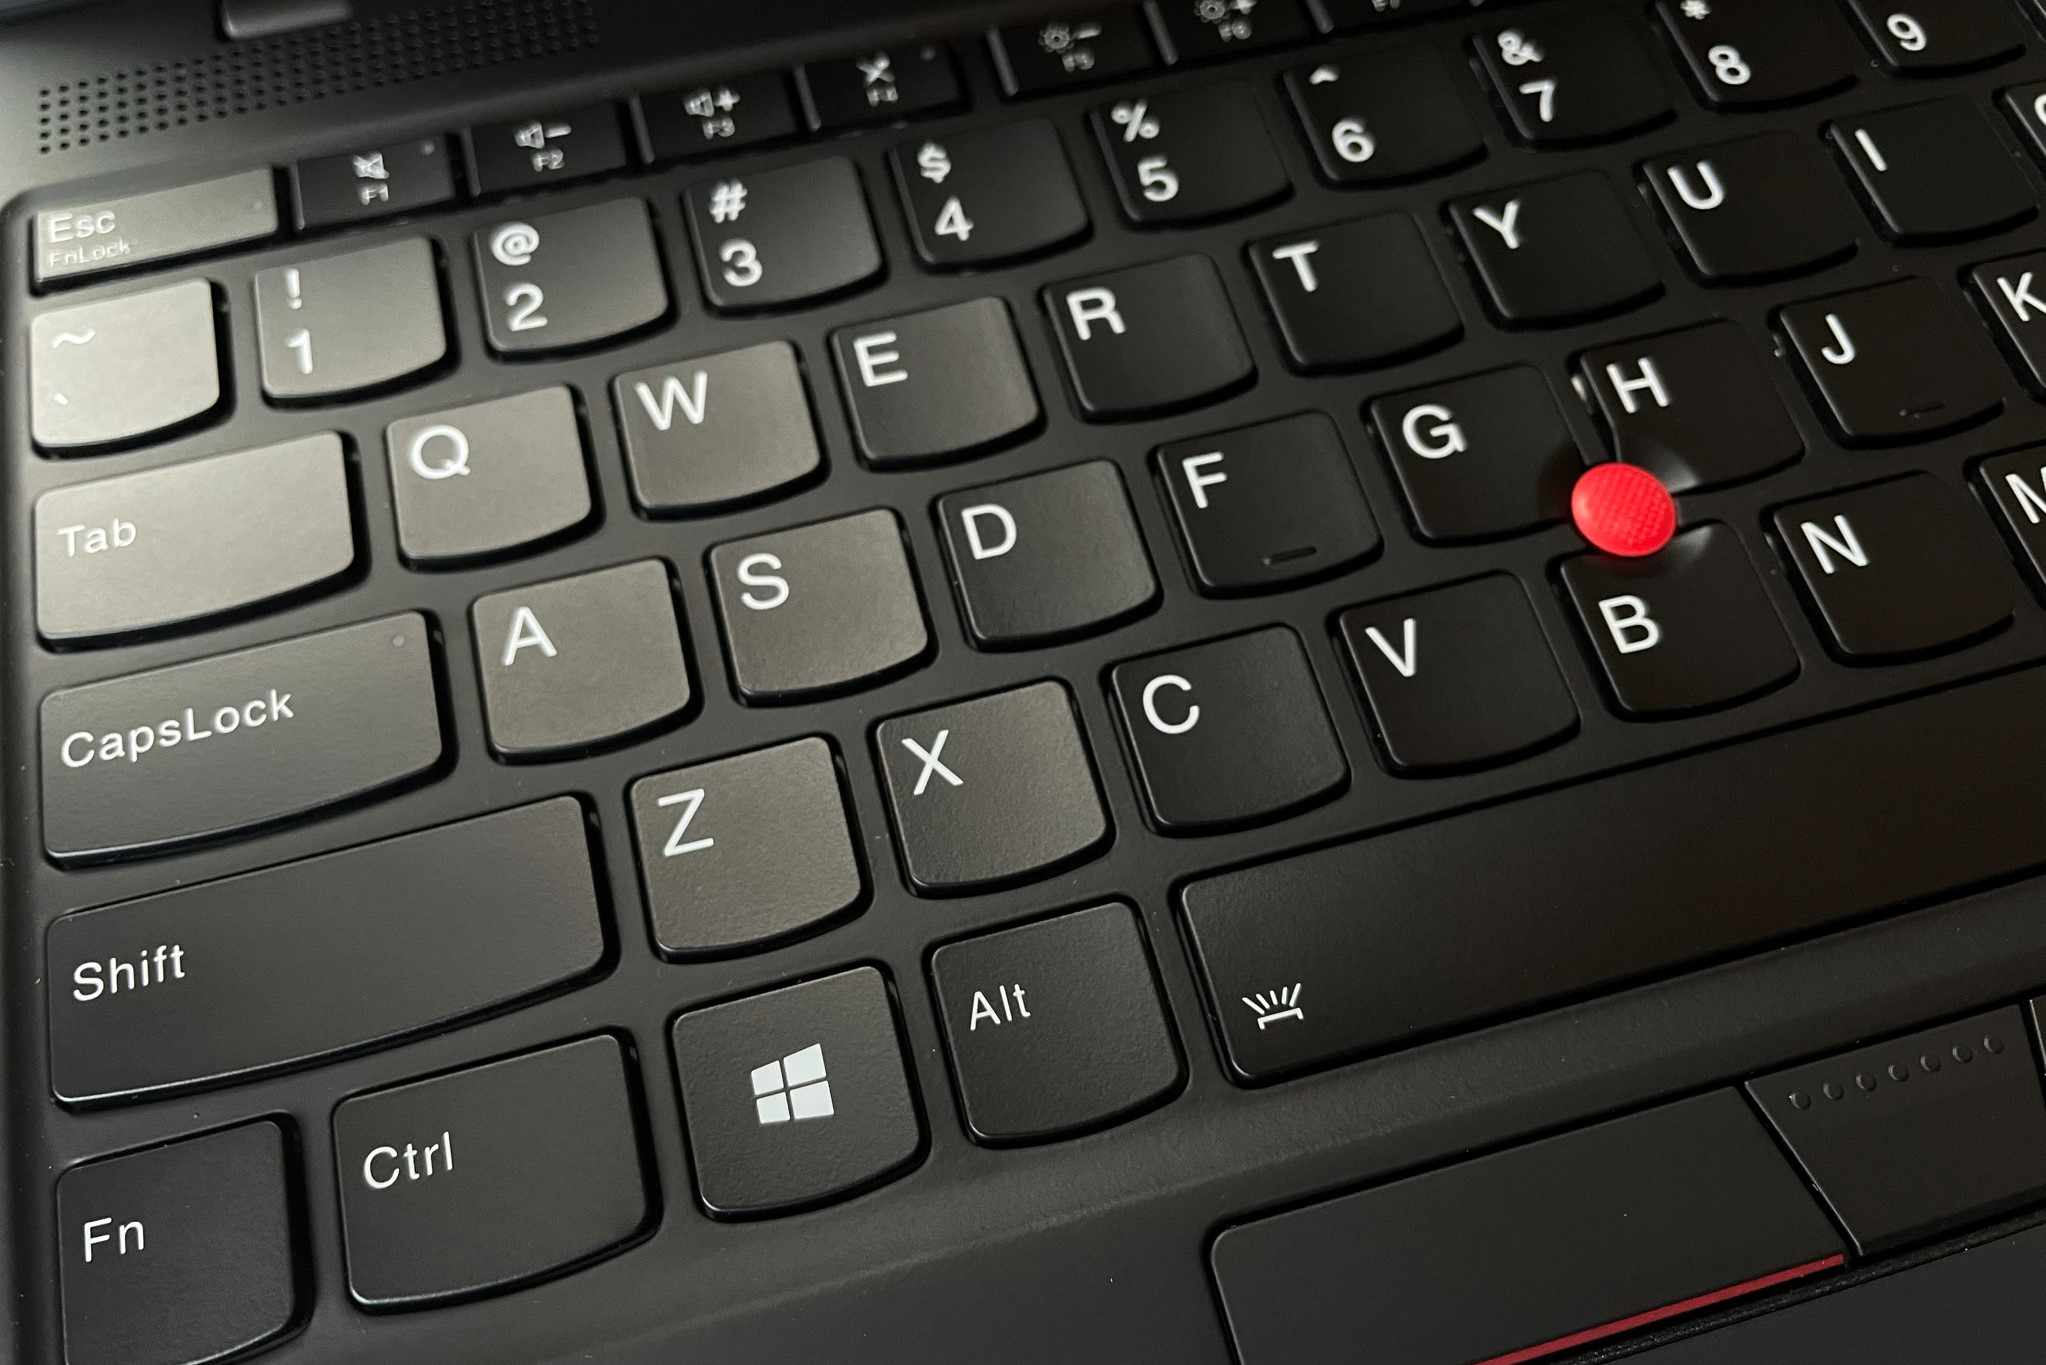 A photo of a Lenovo laptop keyboard with the Function and Spacebar keys shown